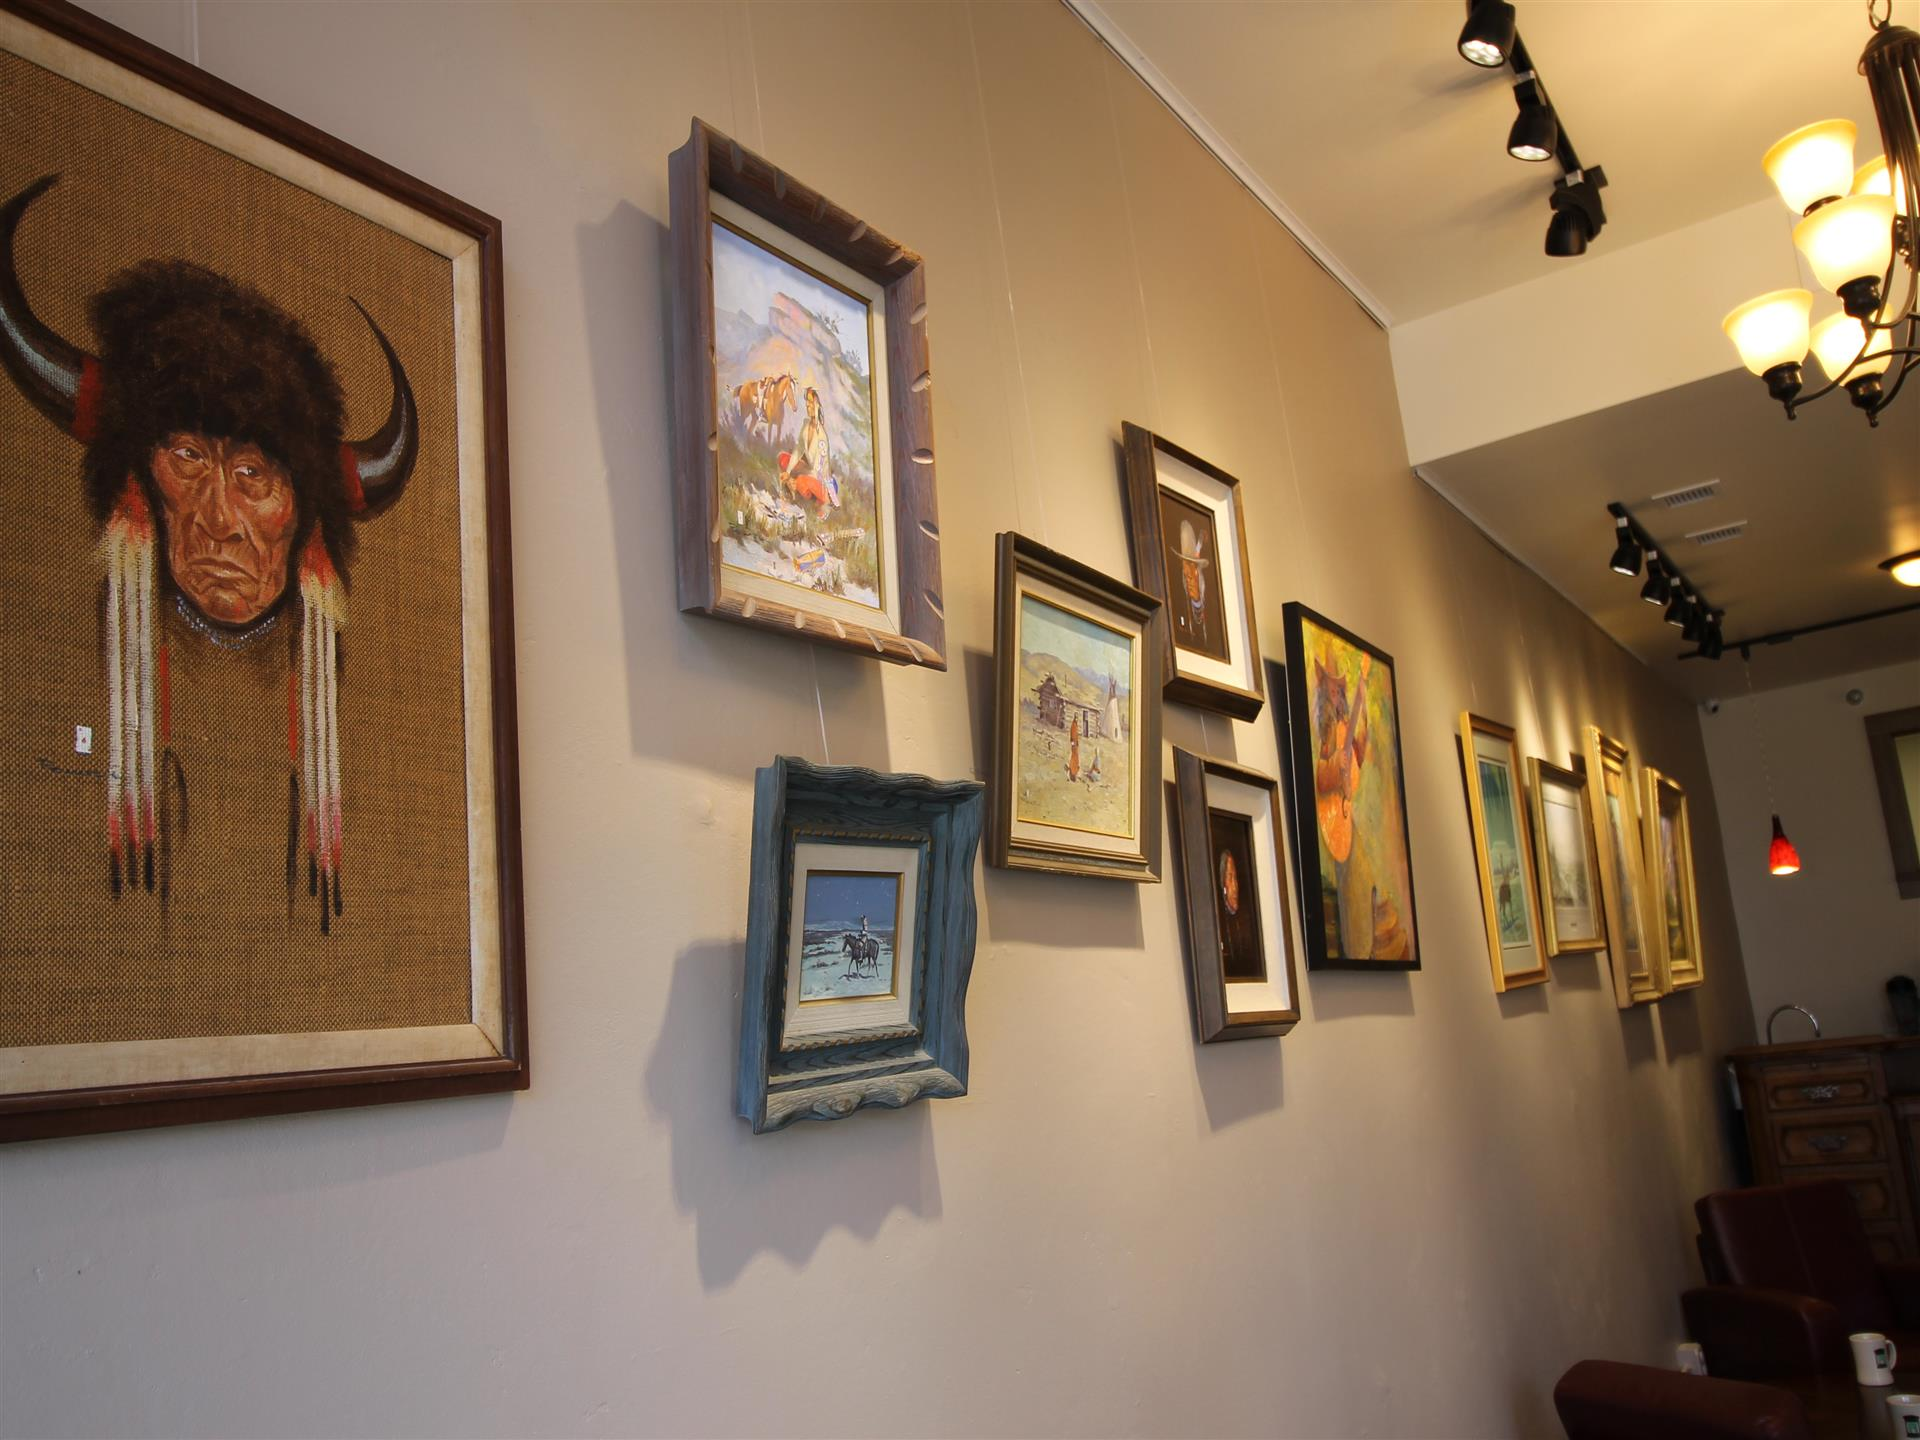 various paintings being displayed on the wall for decorations